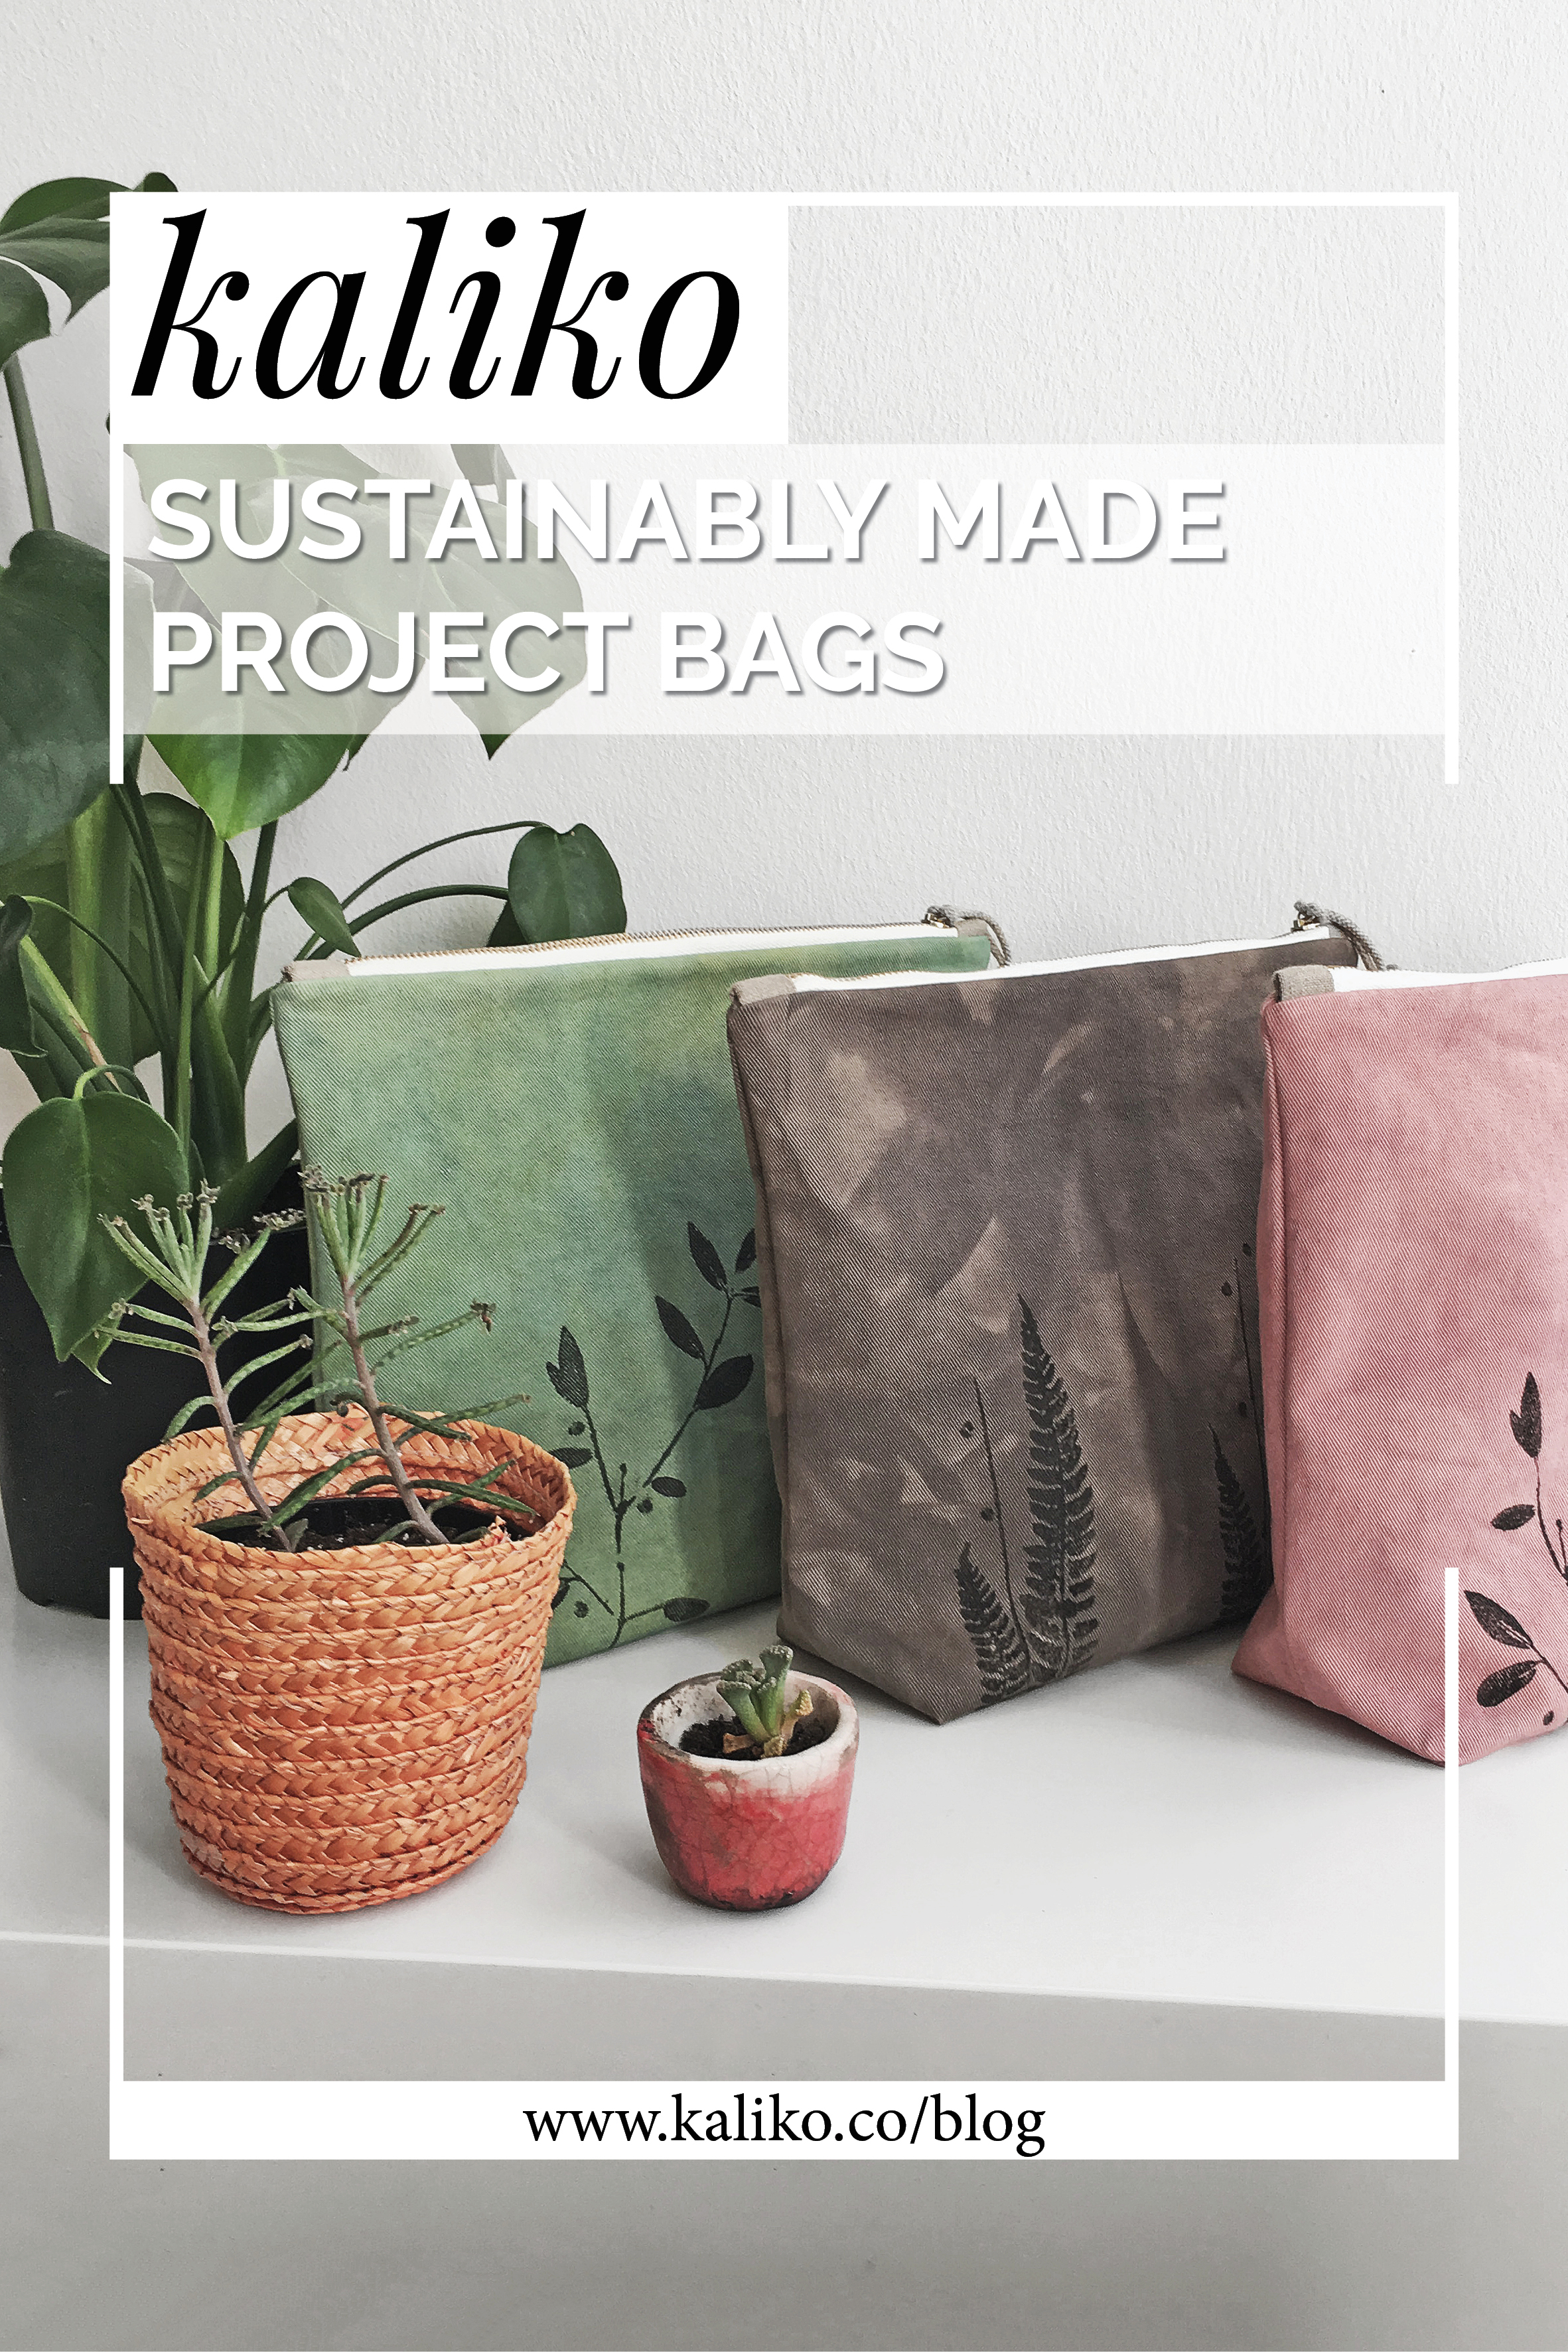 Making of sustainable project bags